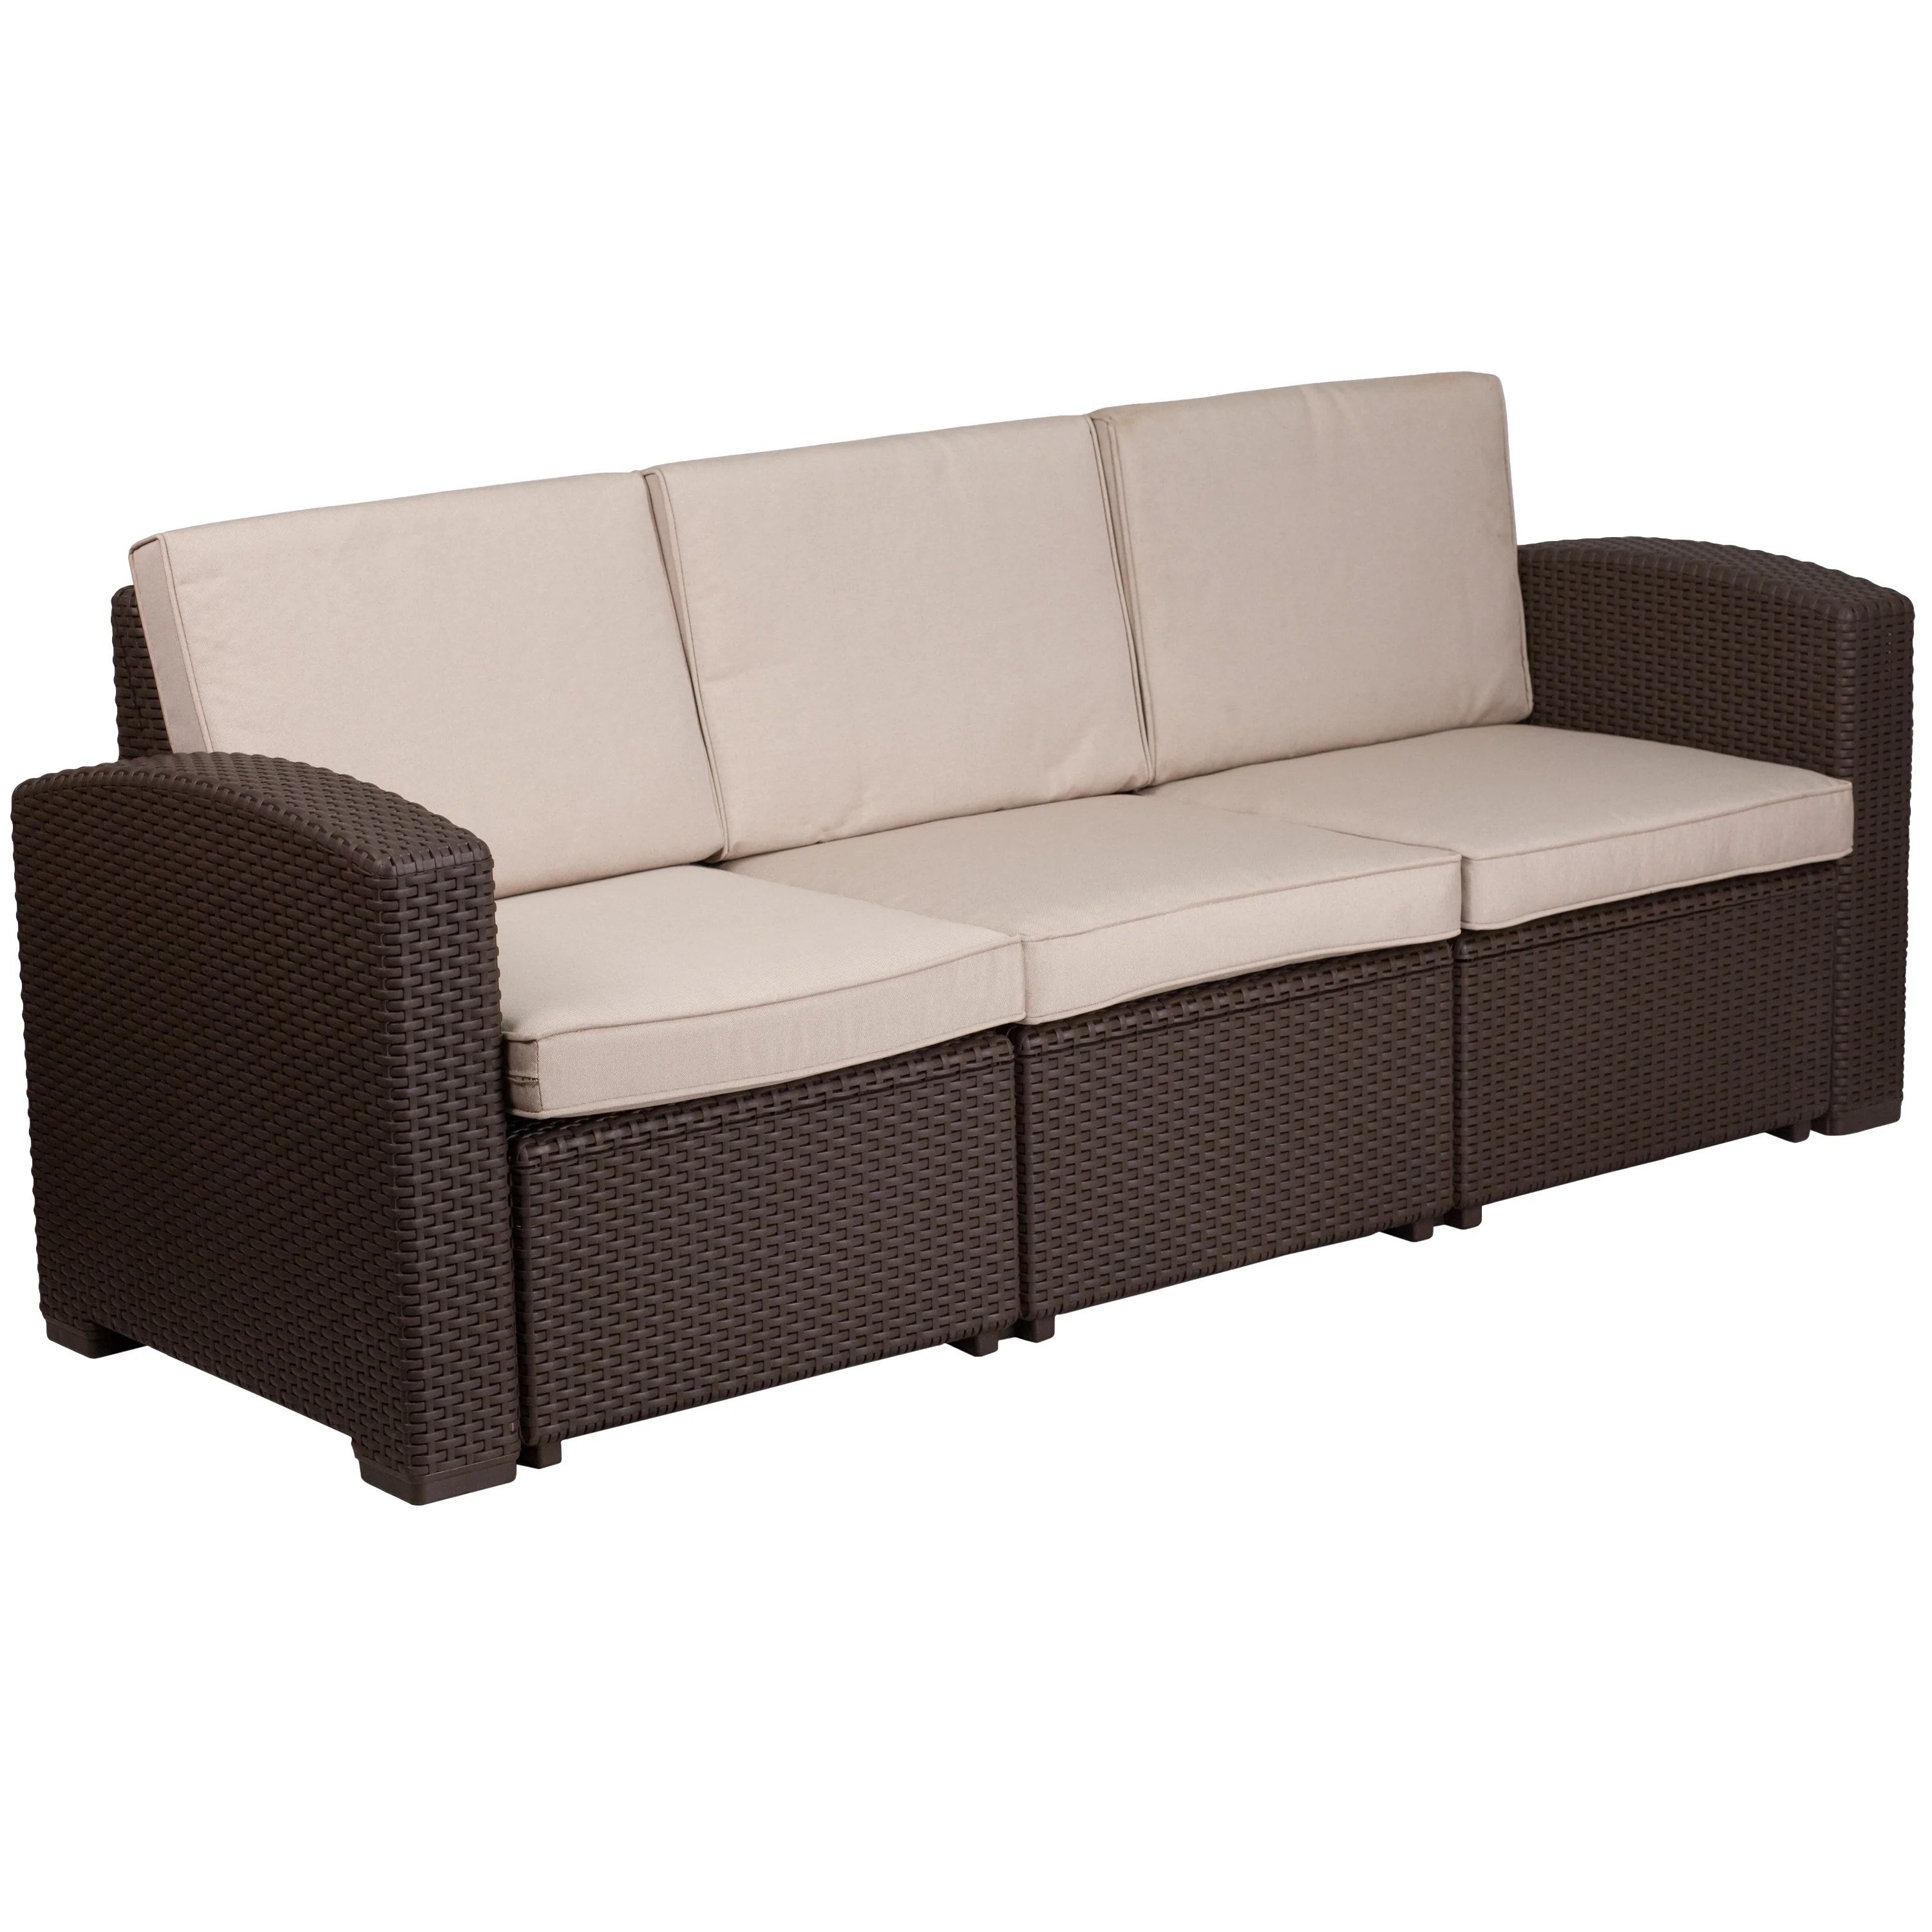 Rattan Sofa Faux Rattan Sofa With All Weather Cushions